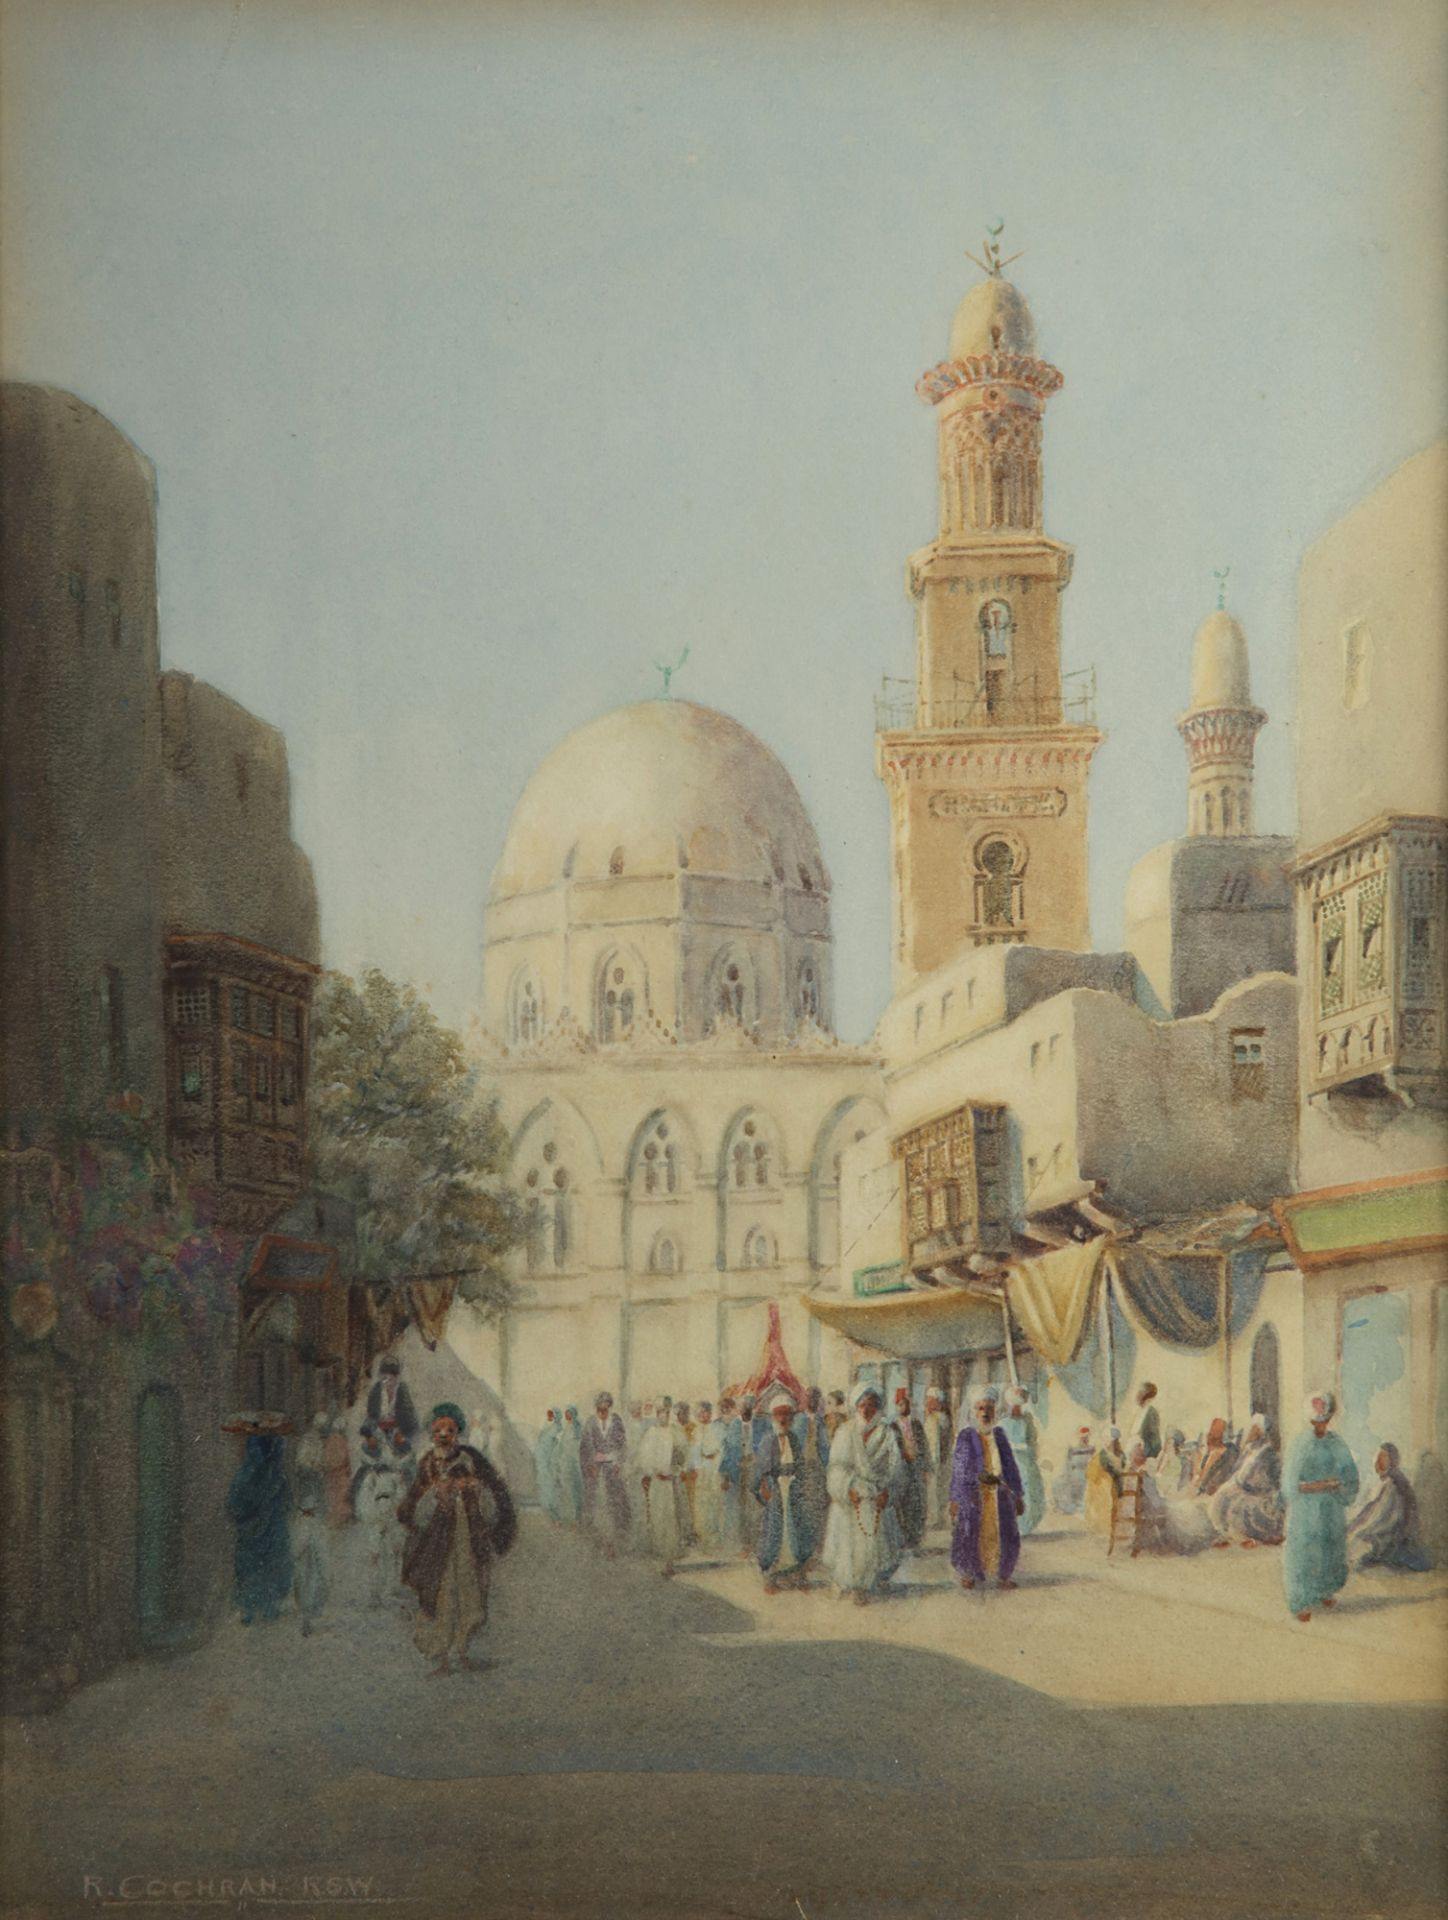 A PAINTING DEPICTING VARIOUS FIGURES NEAR THE MOSQUE IN CAIRO, 19TH-20TH CENTURY - Image 2 of 3